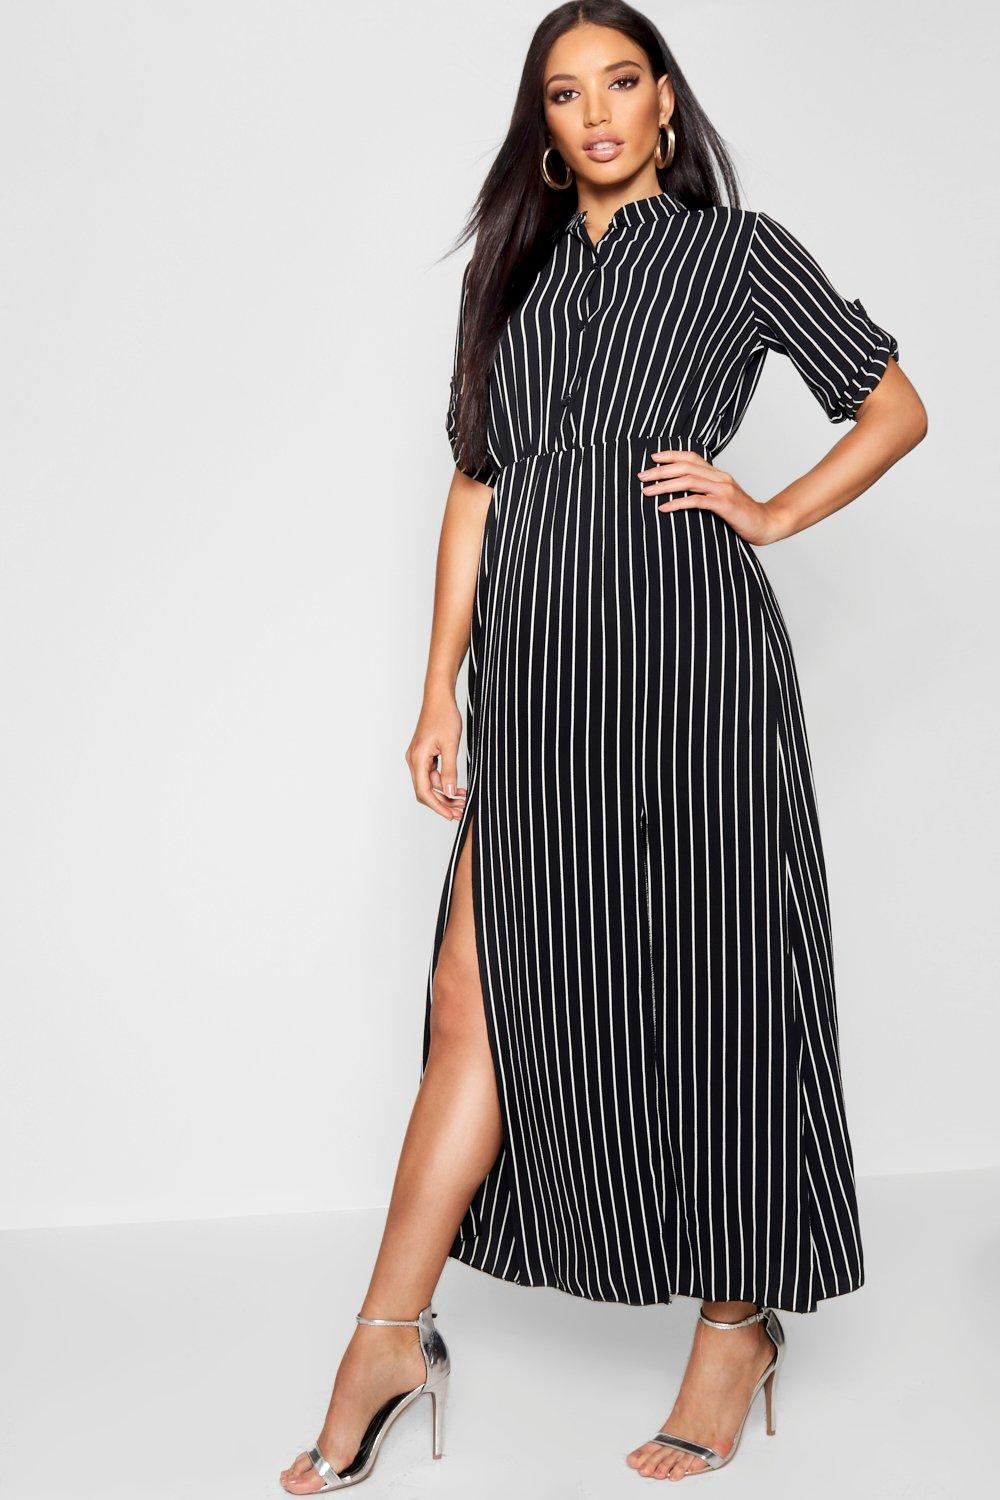 90d3865807 ... Stripe Maxi Shirt Dress. Hover to zoom